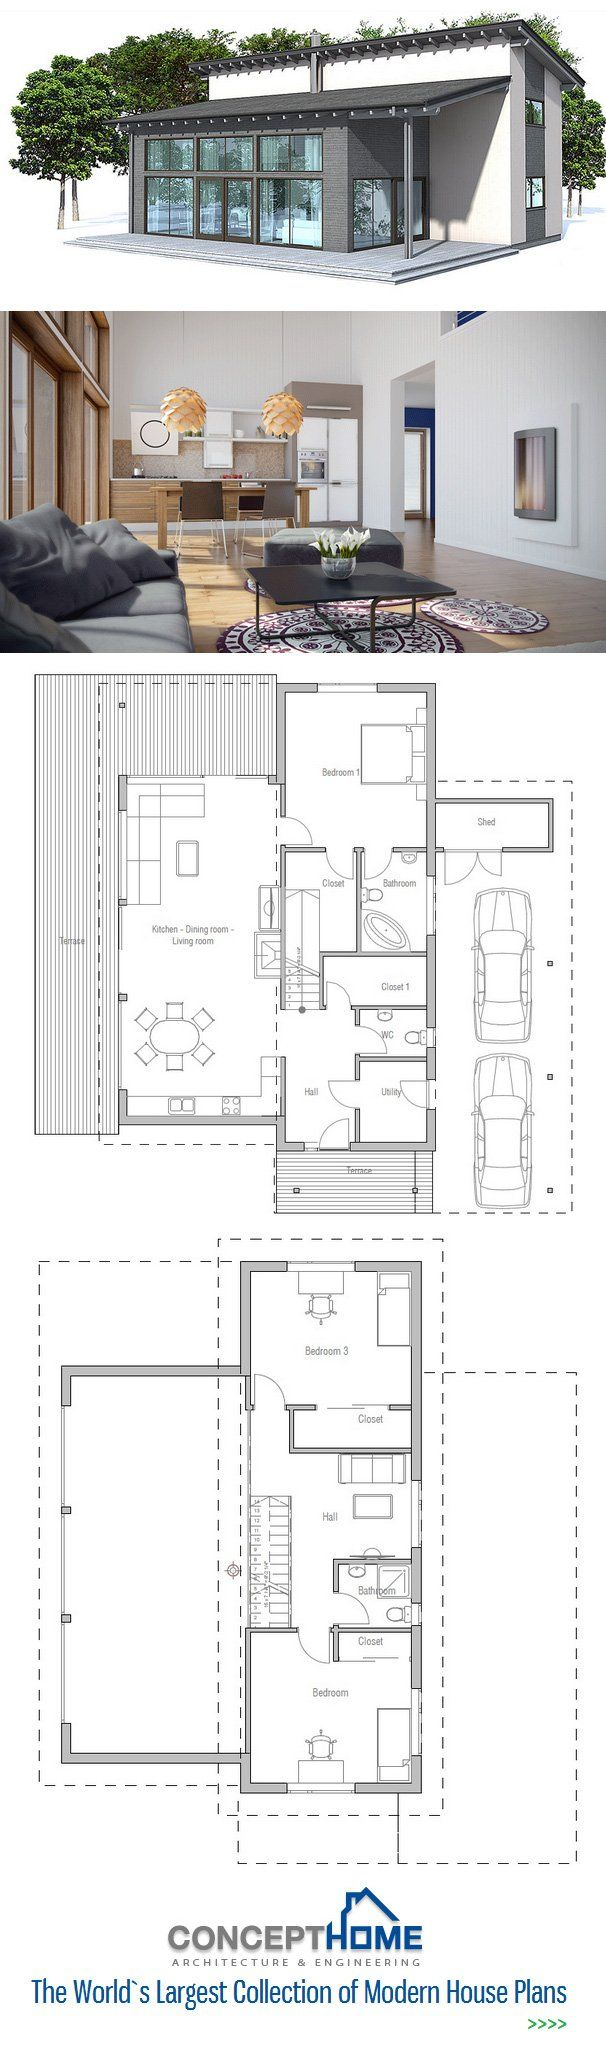 best 10 small house floor plans ideas on pinterest small house best 10 small house floor plans ideas on pinterest small house plans small home plans and house of bedrooms